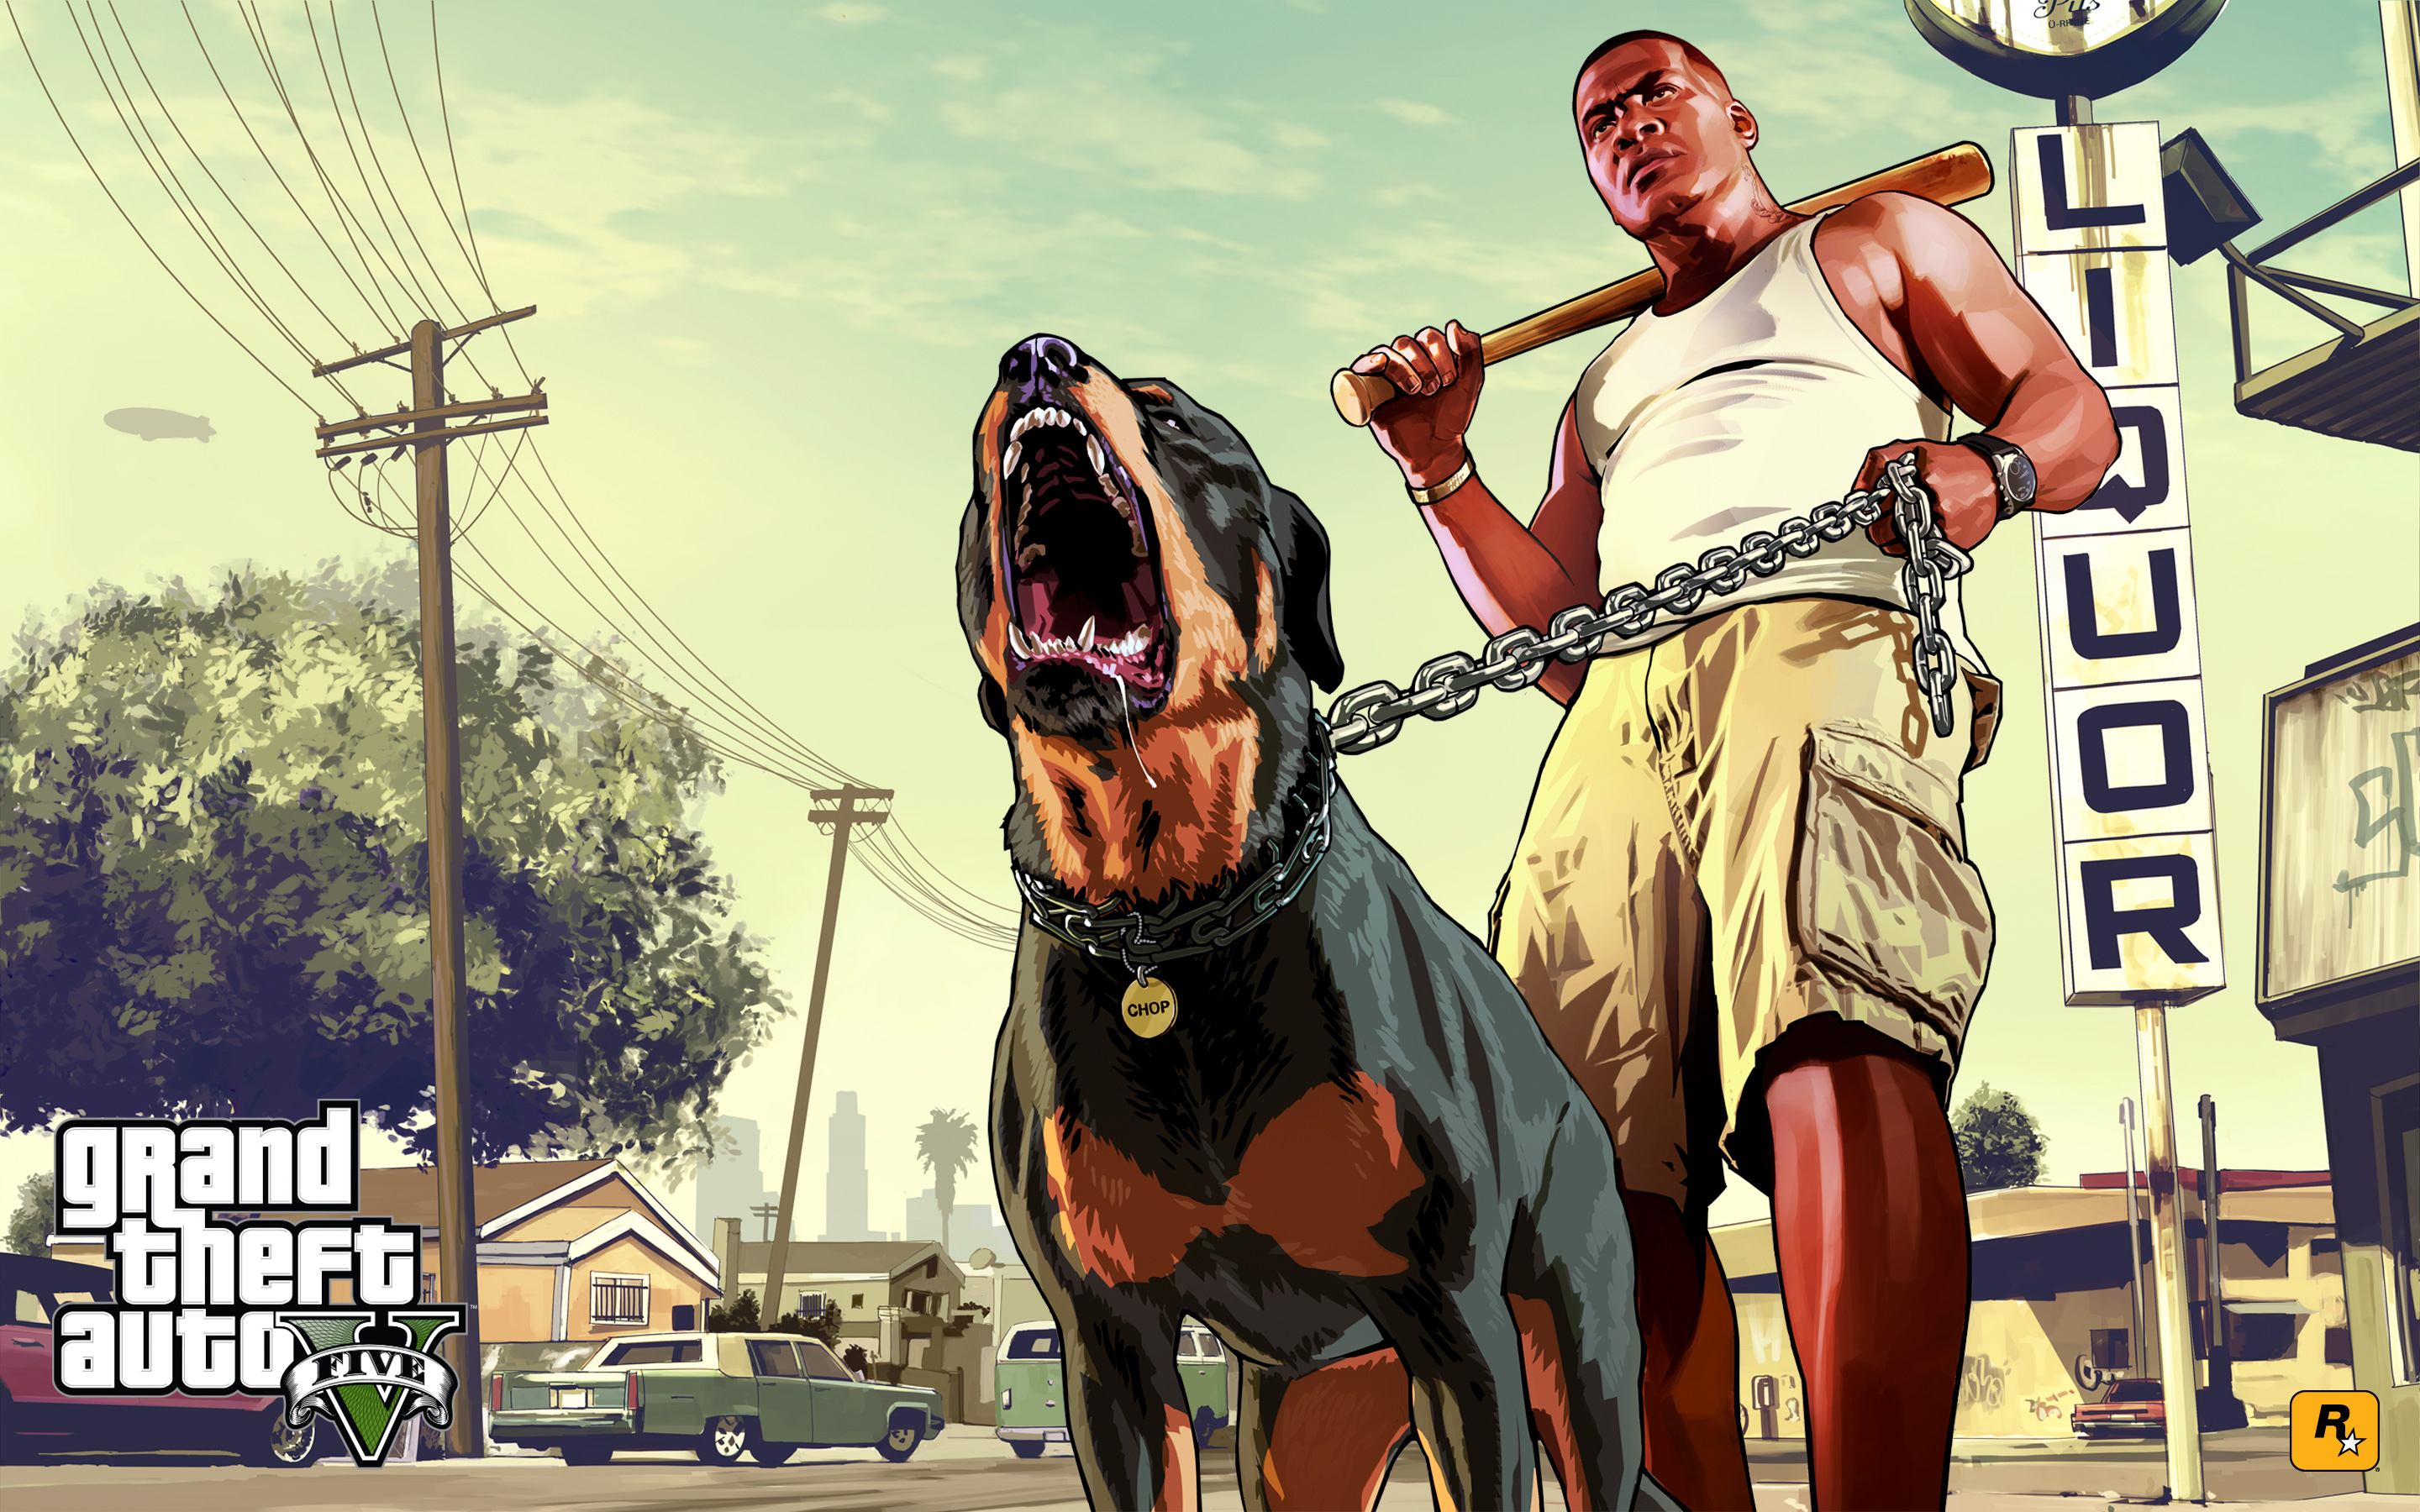 Grand Theft Auto V HD Wallpaper | Background Image | 2880x1800 | ID:421641 - Wallpaper Abyss